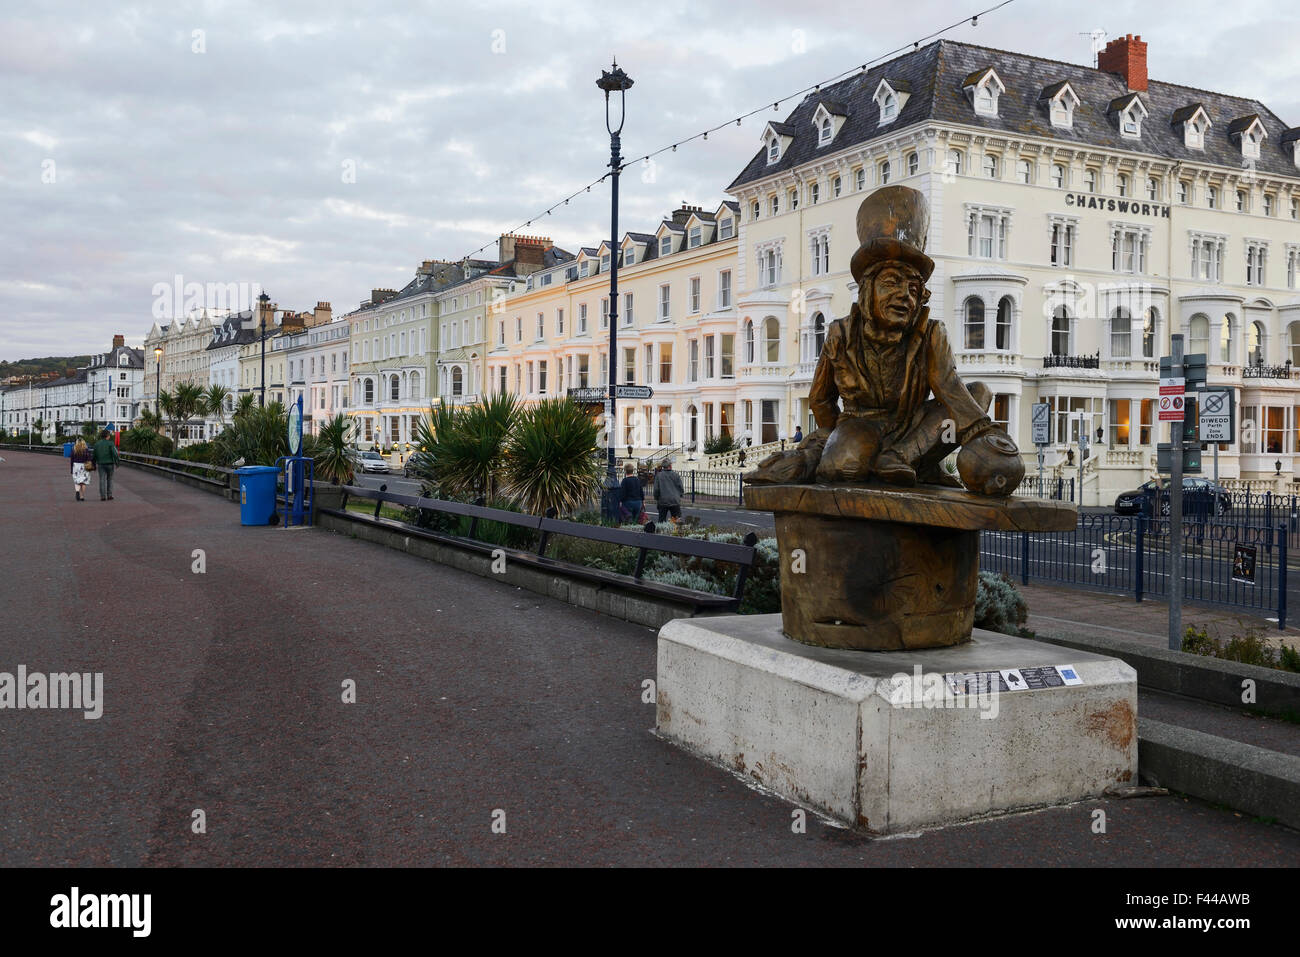 Mad Hatter statue, carved from wood, from Alice in Wonderland story on the promenade in Llandudno. - Stock Image